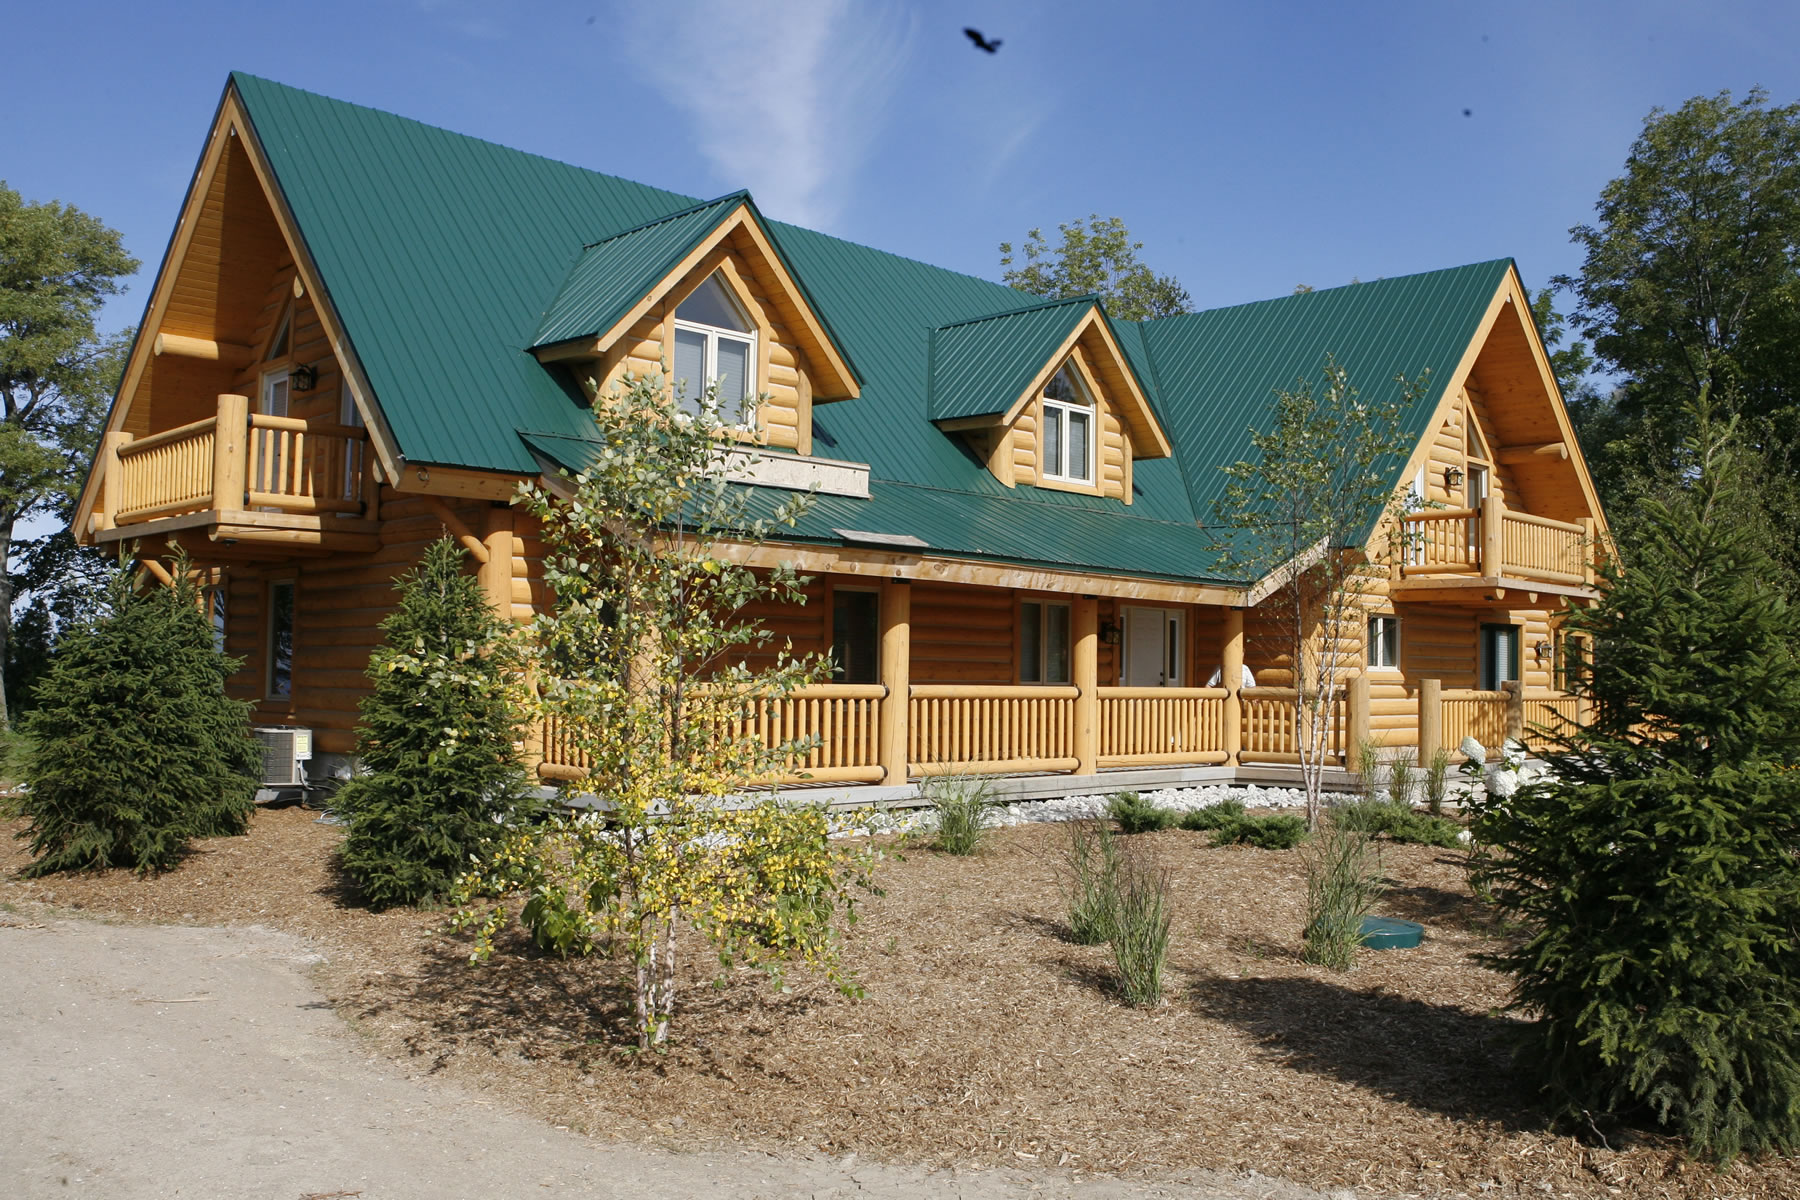 The Original Log Cabin Homes Picked For Cabin Of The Year